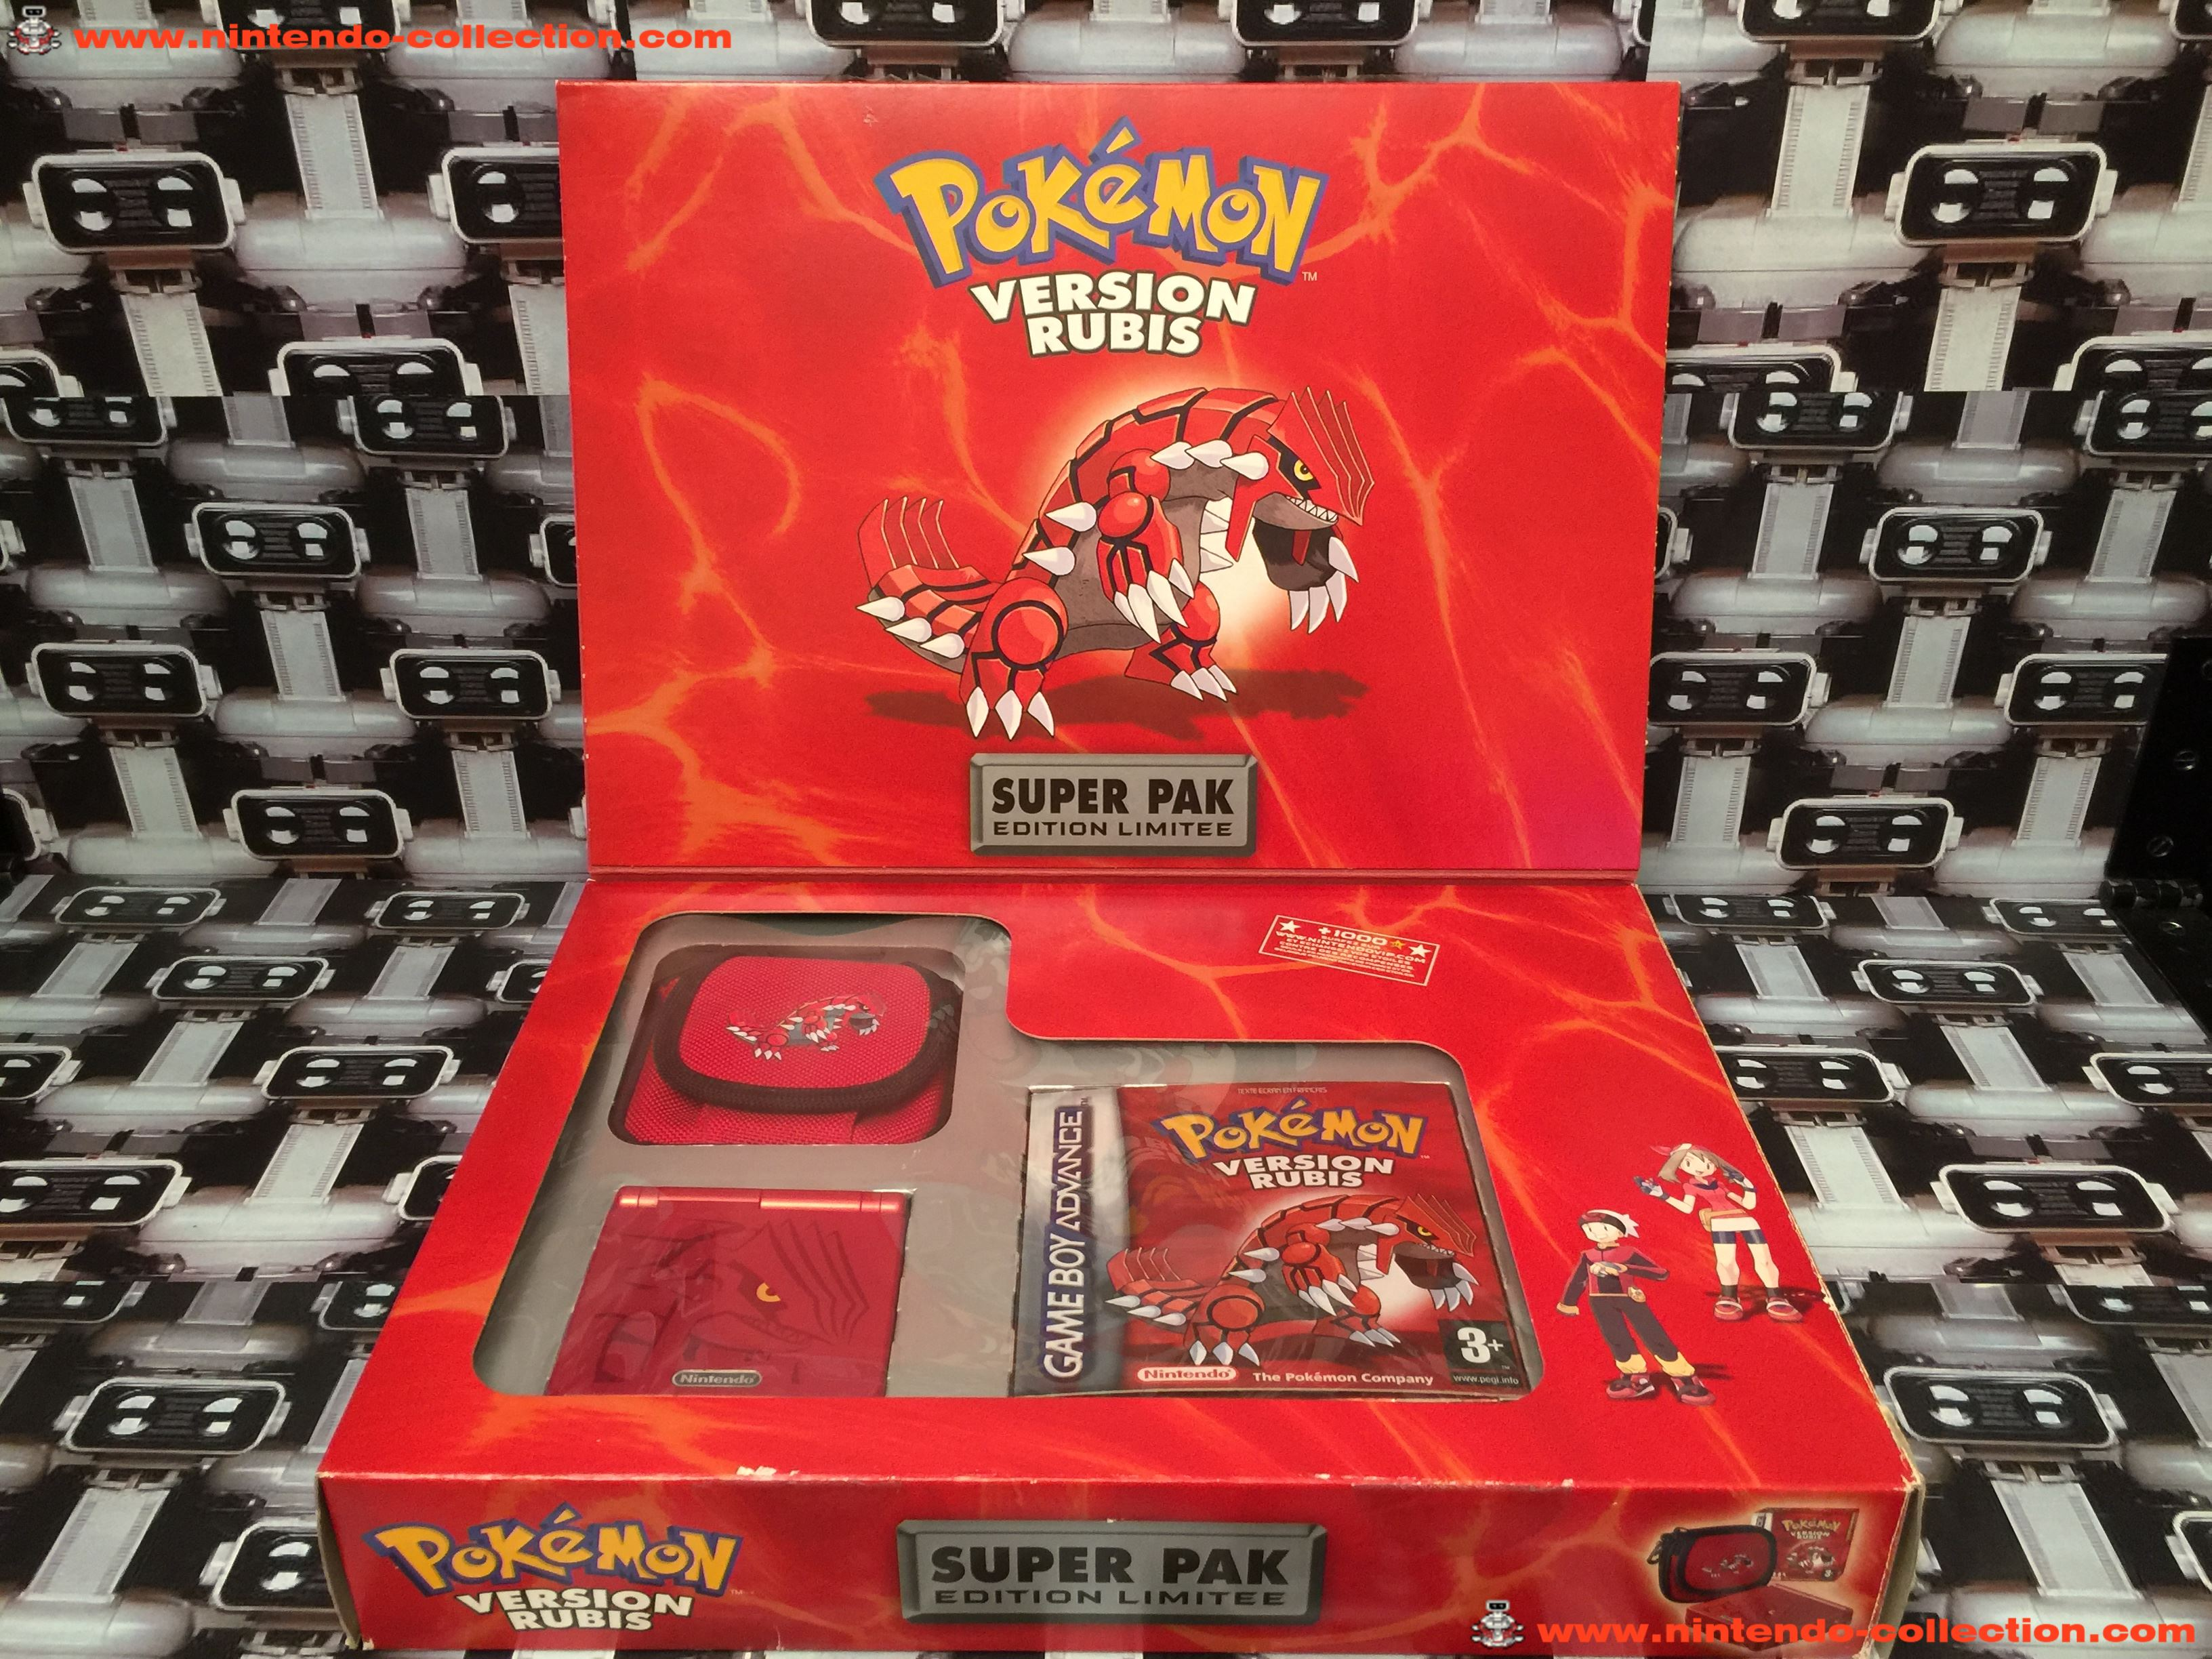 www.nintendo-collection.com - Gameboy Advance SP Super Pack Collector Pokemon Version Rubis - 02